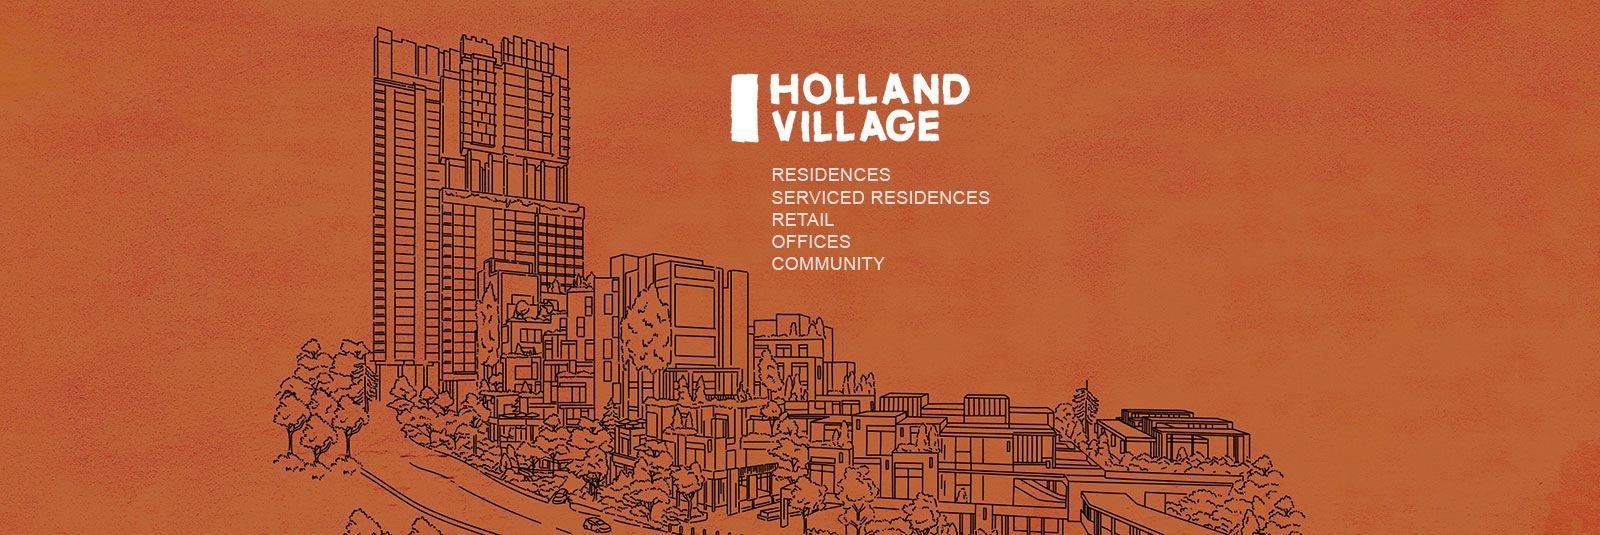 one holland village footer